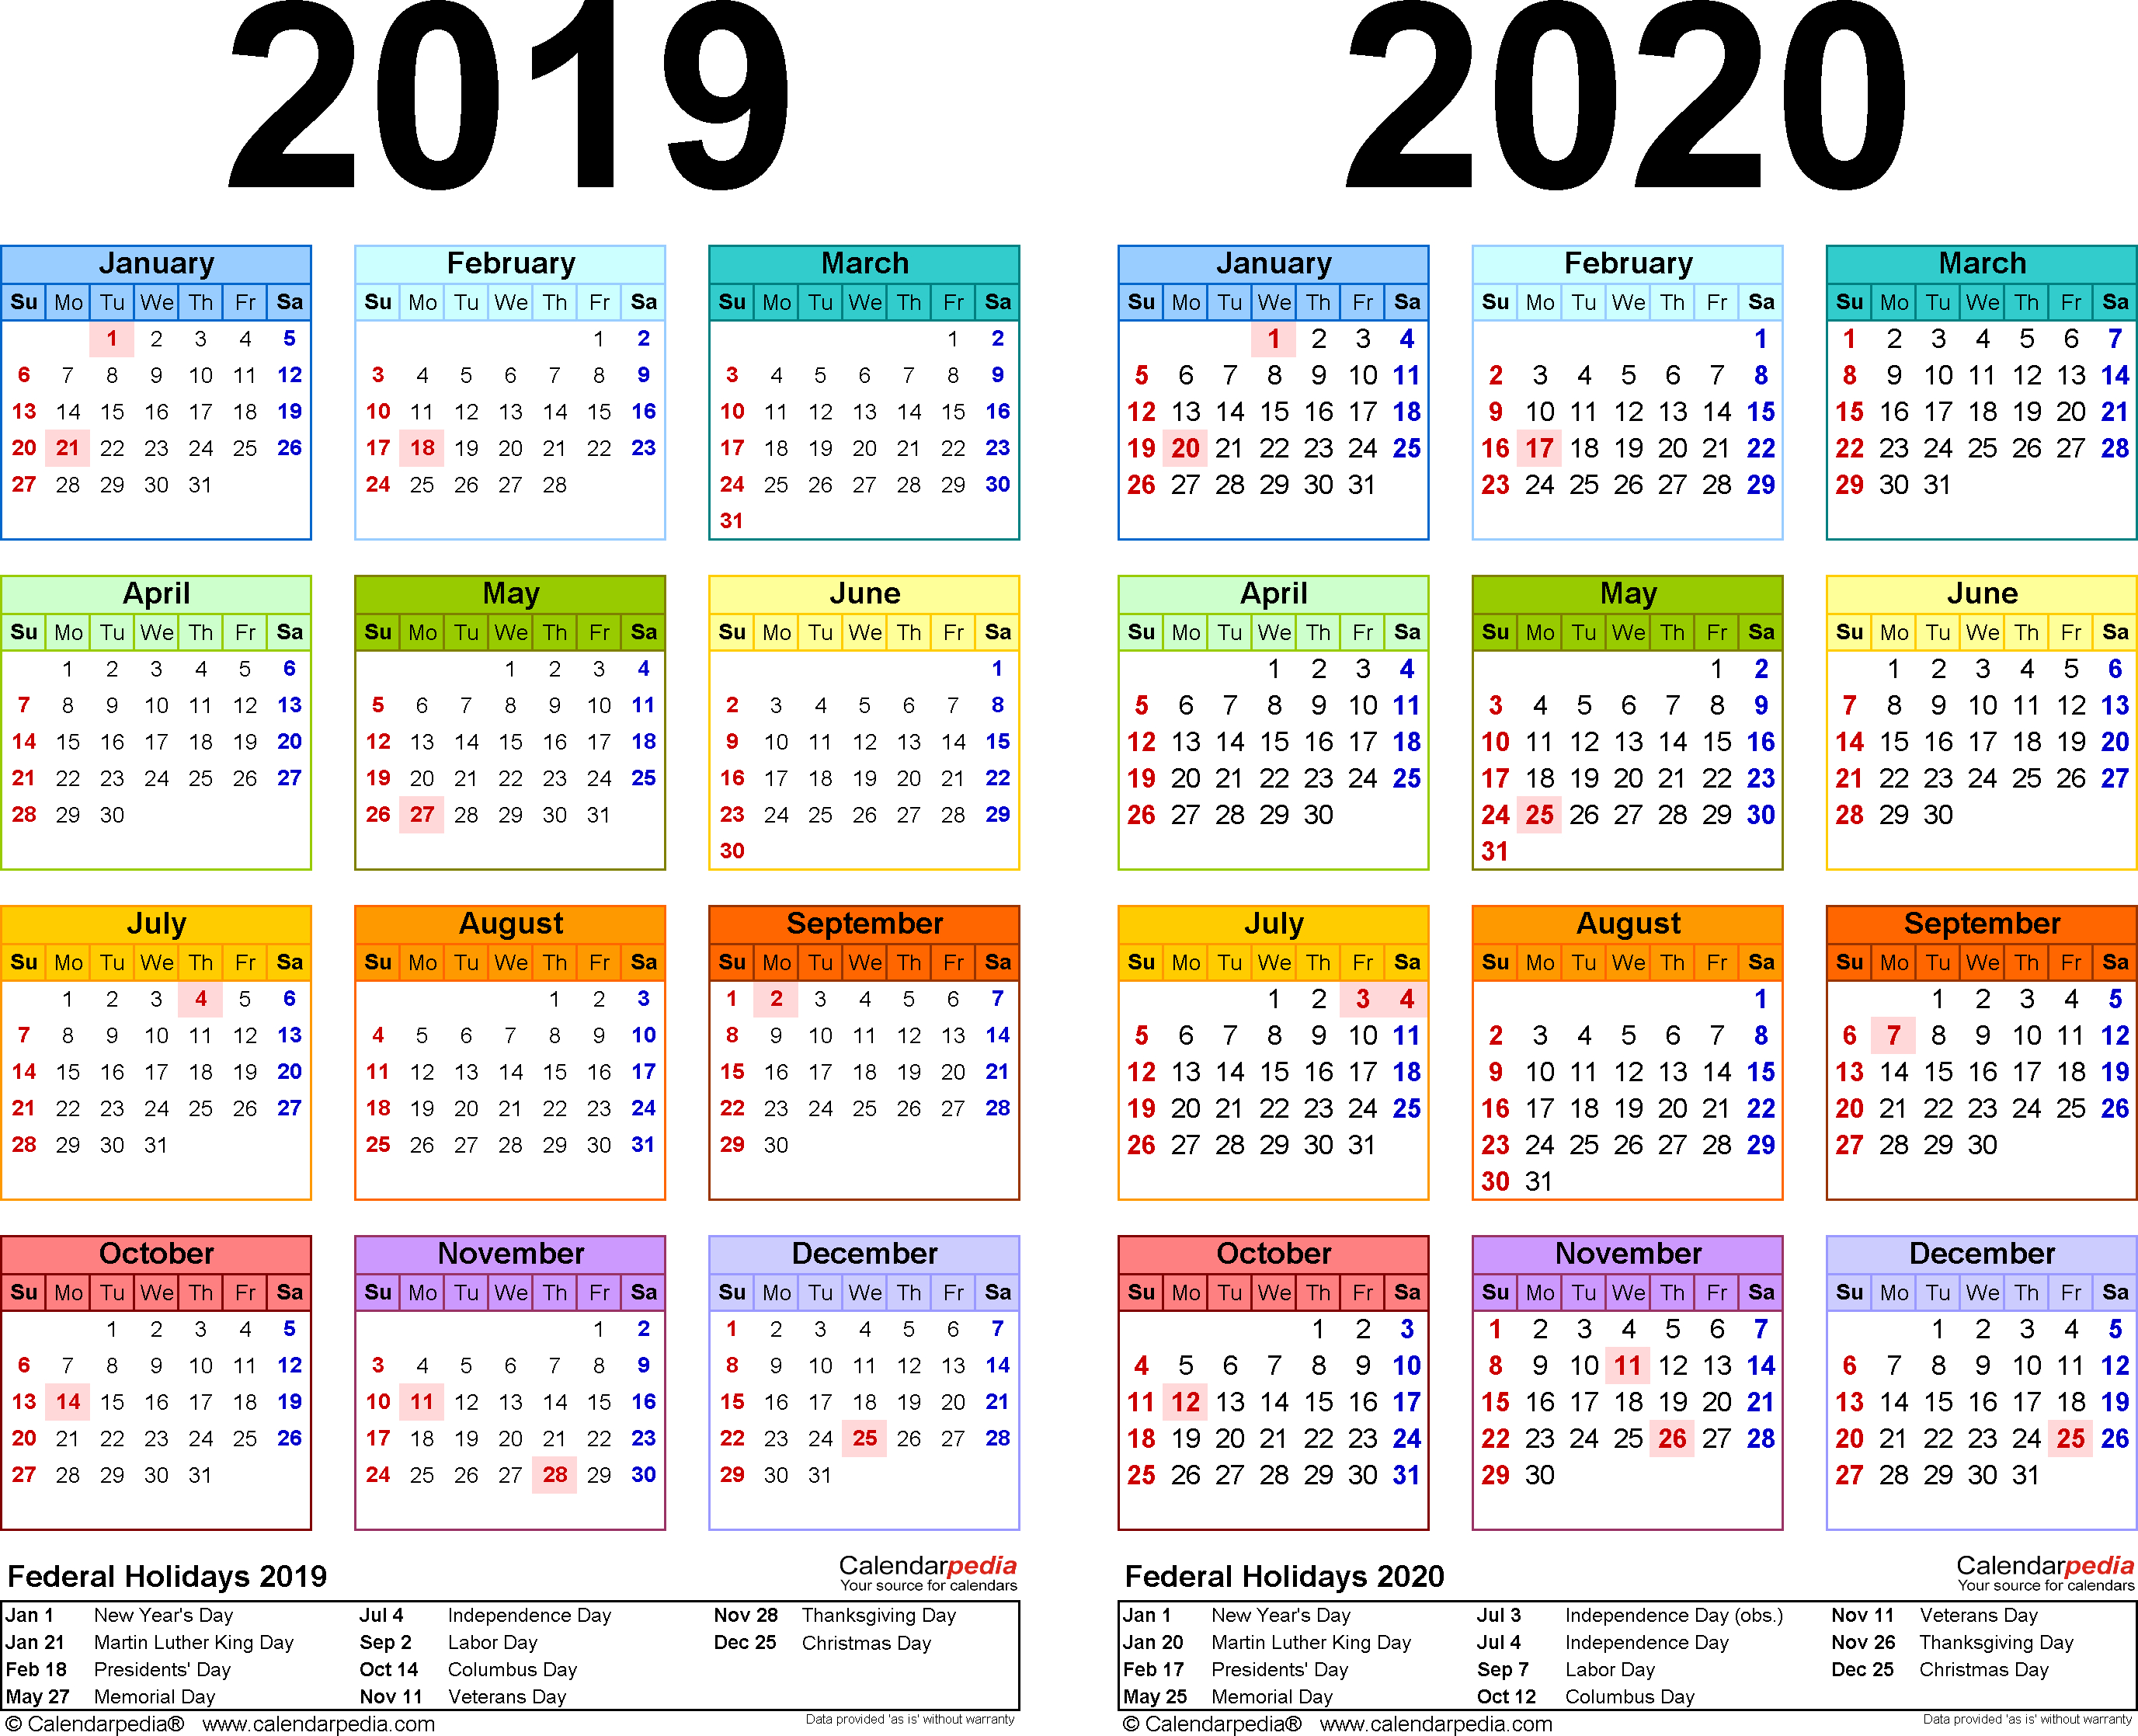 2019-2020 Calendar - Free Printable Two-Year Pdf Calendars throughout Year To View Calendar 2019/2020